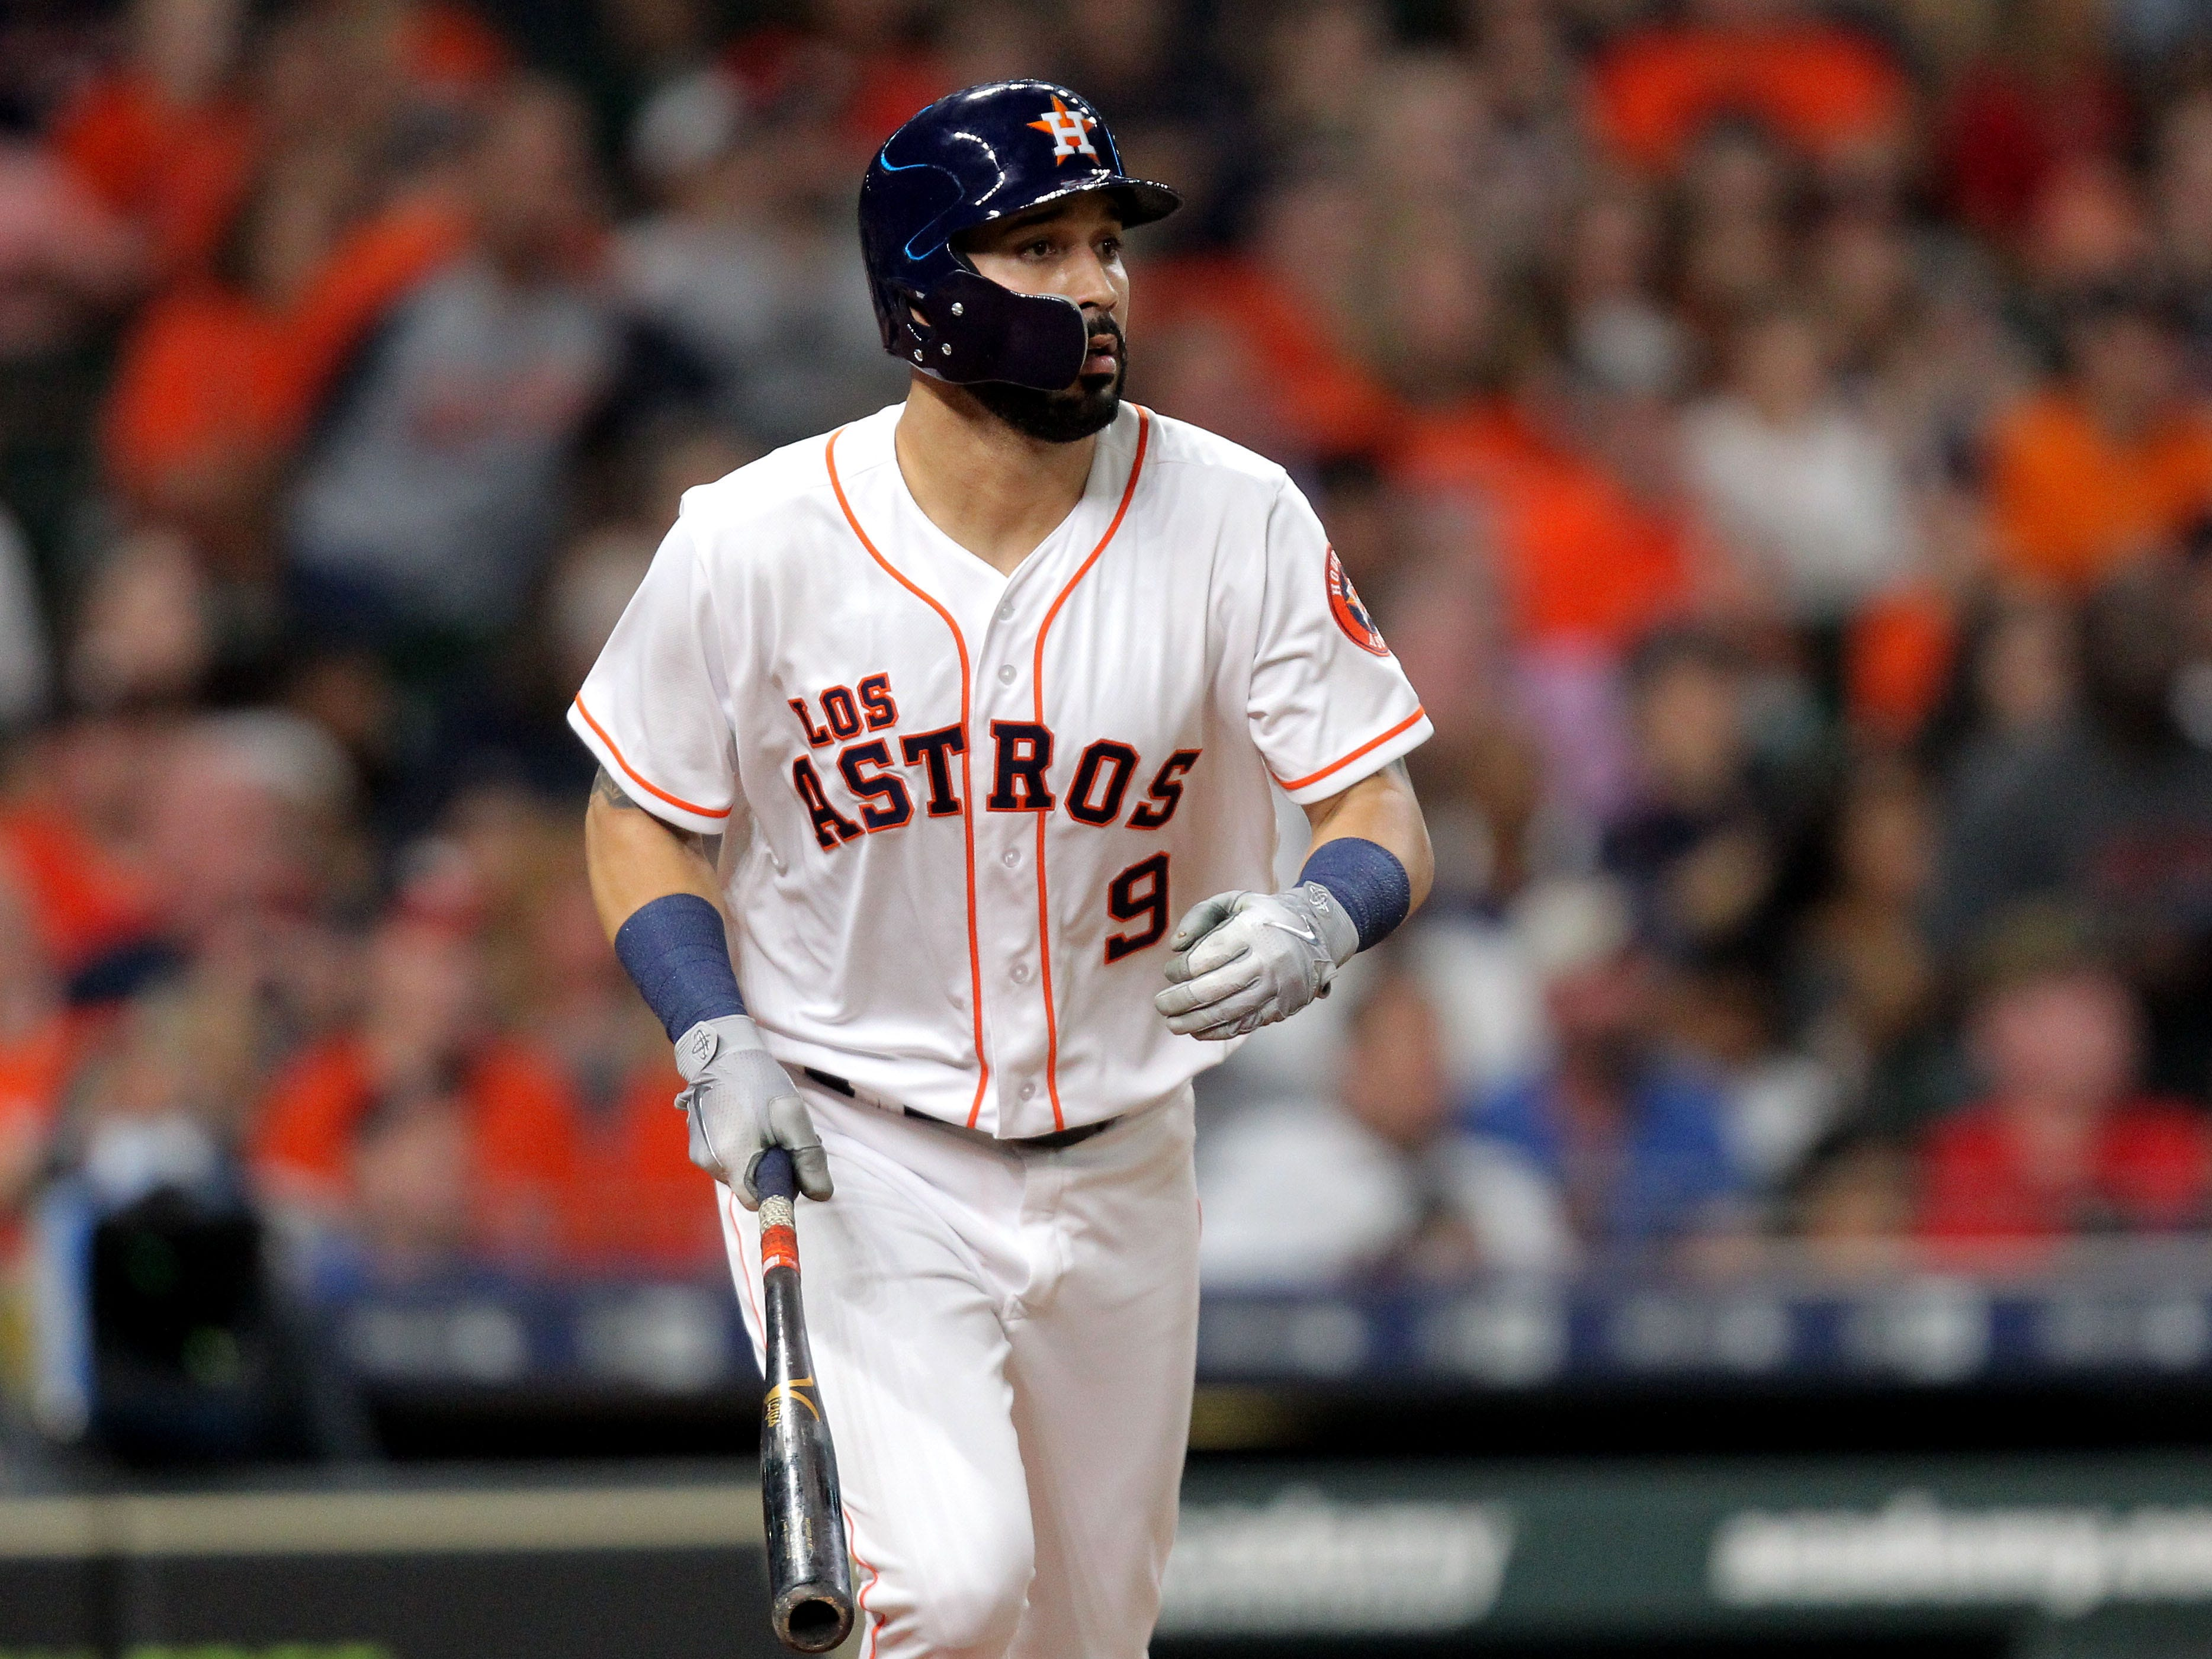 Sep 15, 2018; Houston, TX, USA; Houston Astros left fielder Marwin Gonzalez (9) hits an RBI double to right field against the Arizona Diamondbacks during the fourth inning at Minute Maid Park. Mandatory Credit: Erik Williams-USA TODAY Sports